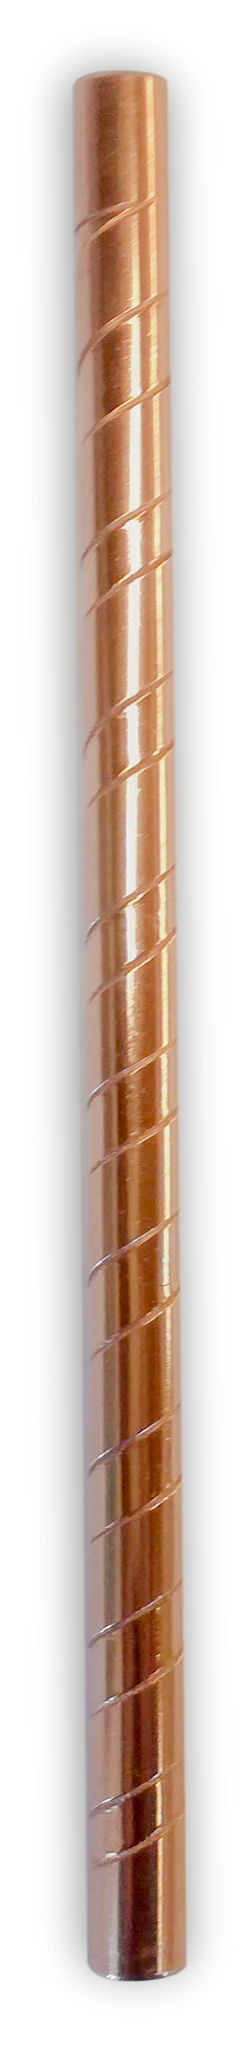 Copper Straw - Etched Smoothie Straw (9mm - diameter)